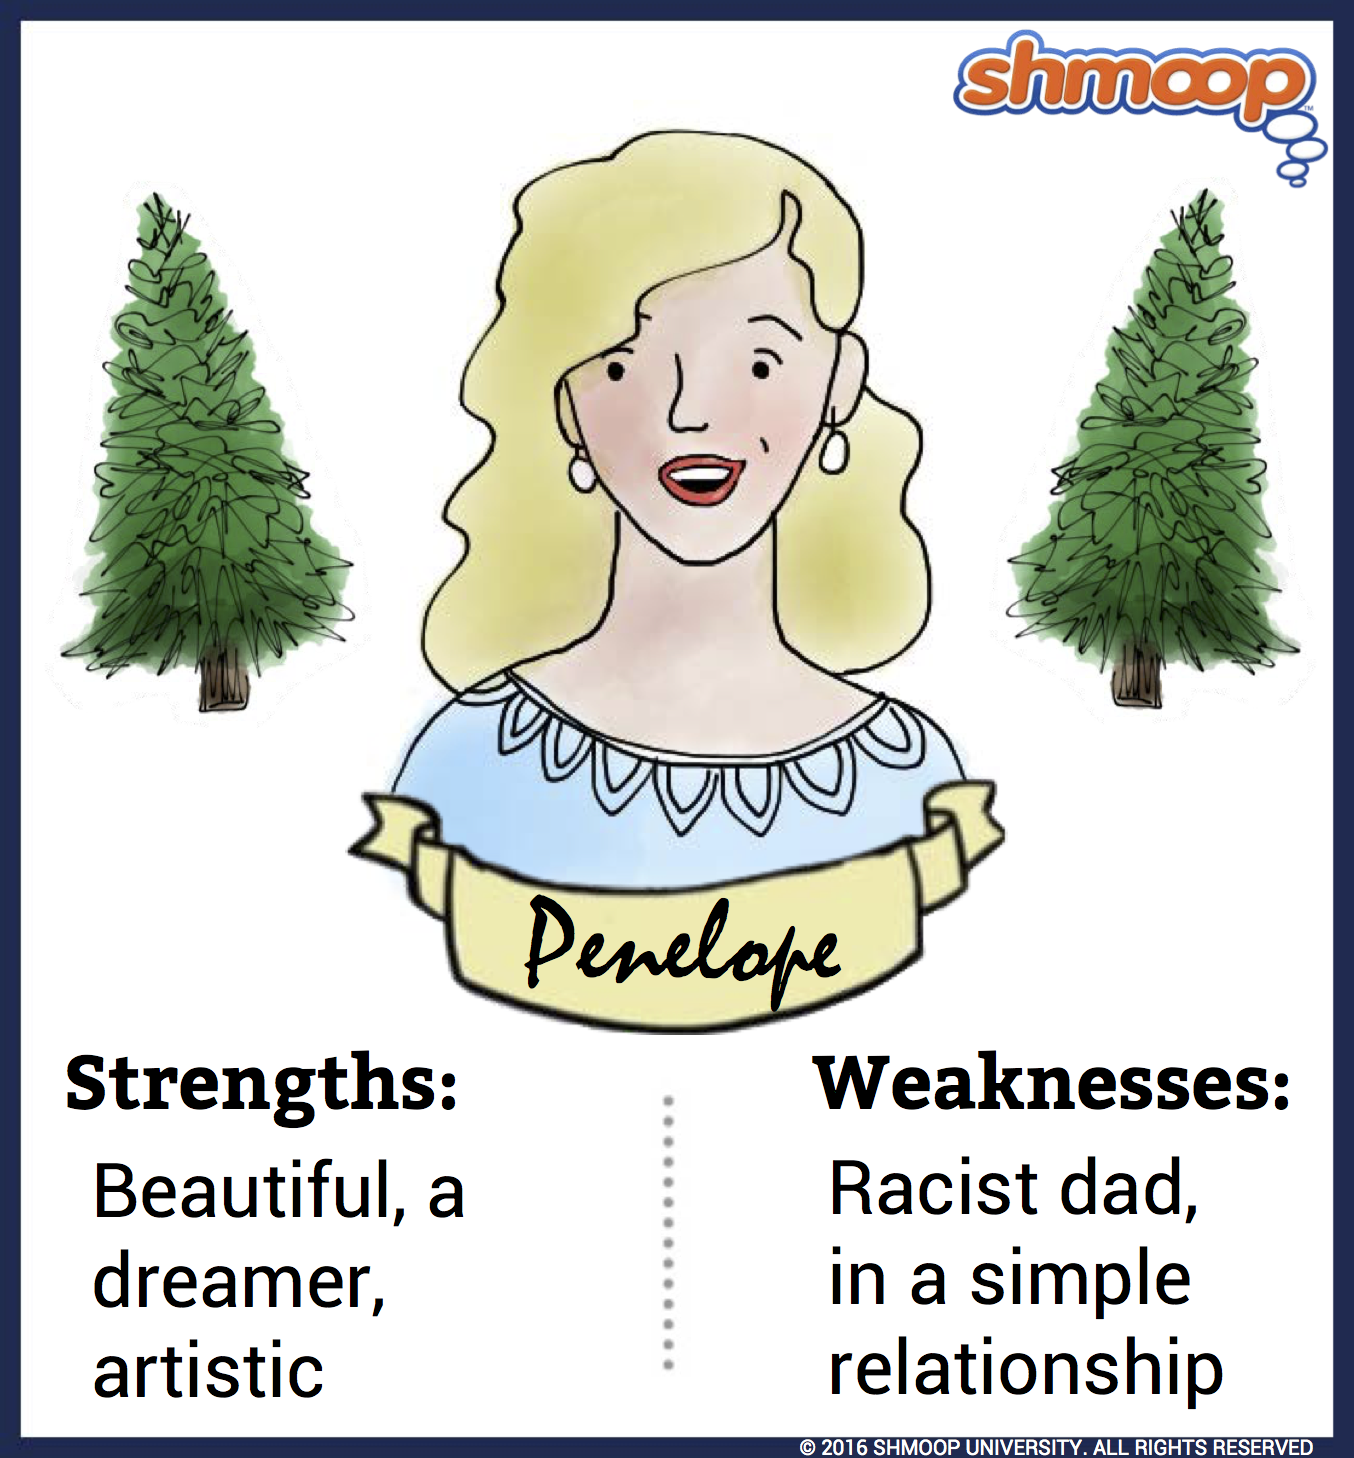 penelope in the absolutely true diary of a part time n click the character infographic to